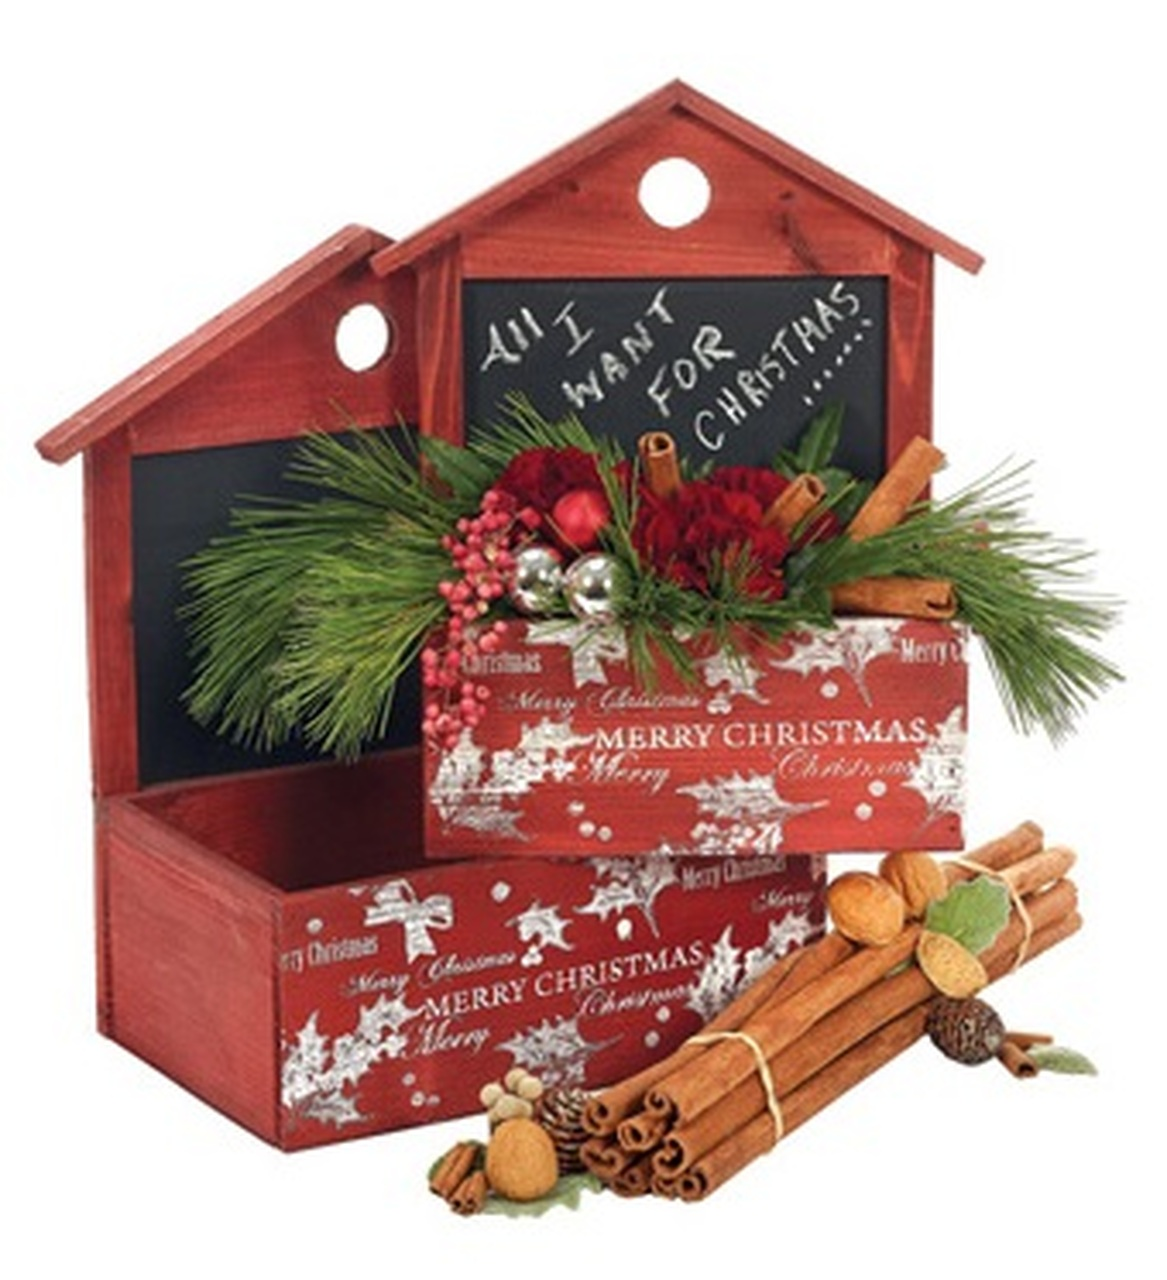 set of 2 decorative wooden red rectangular christmas boxes with chalkboard accent 12 1325 31567476